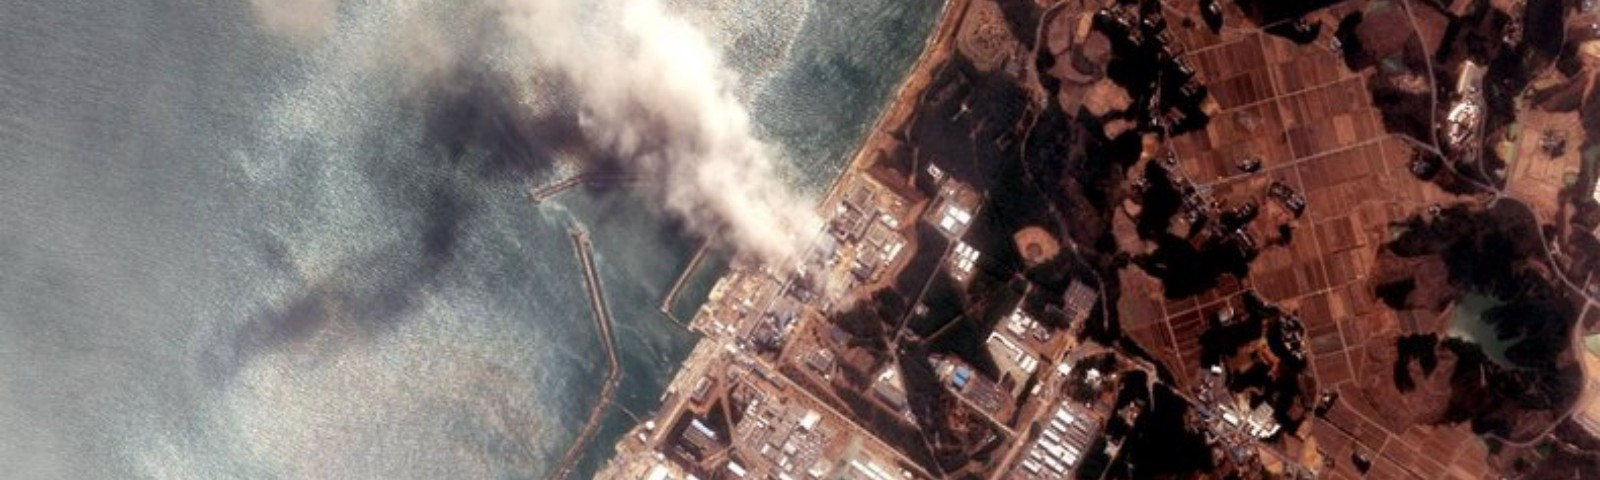 Radioactive Glass Beads May Tell the Terrible Tale of How the Fukushima Meltdown Unfolded